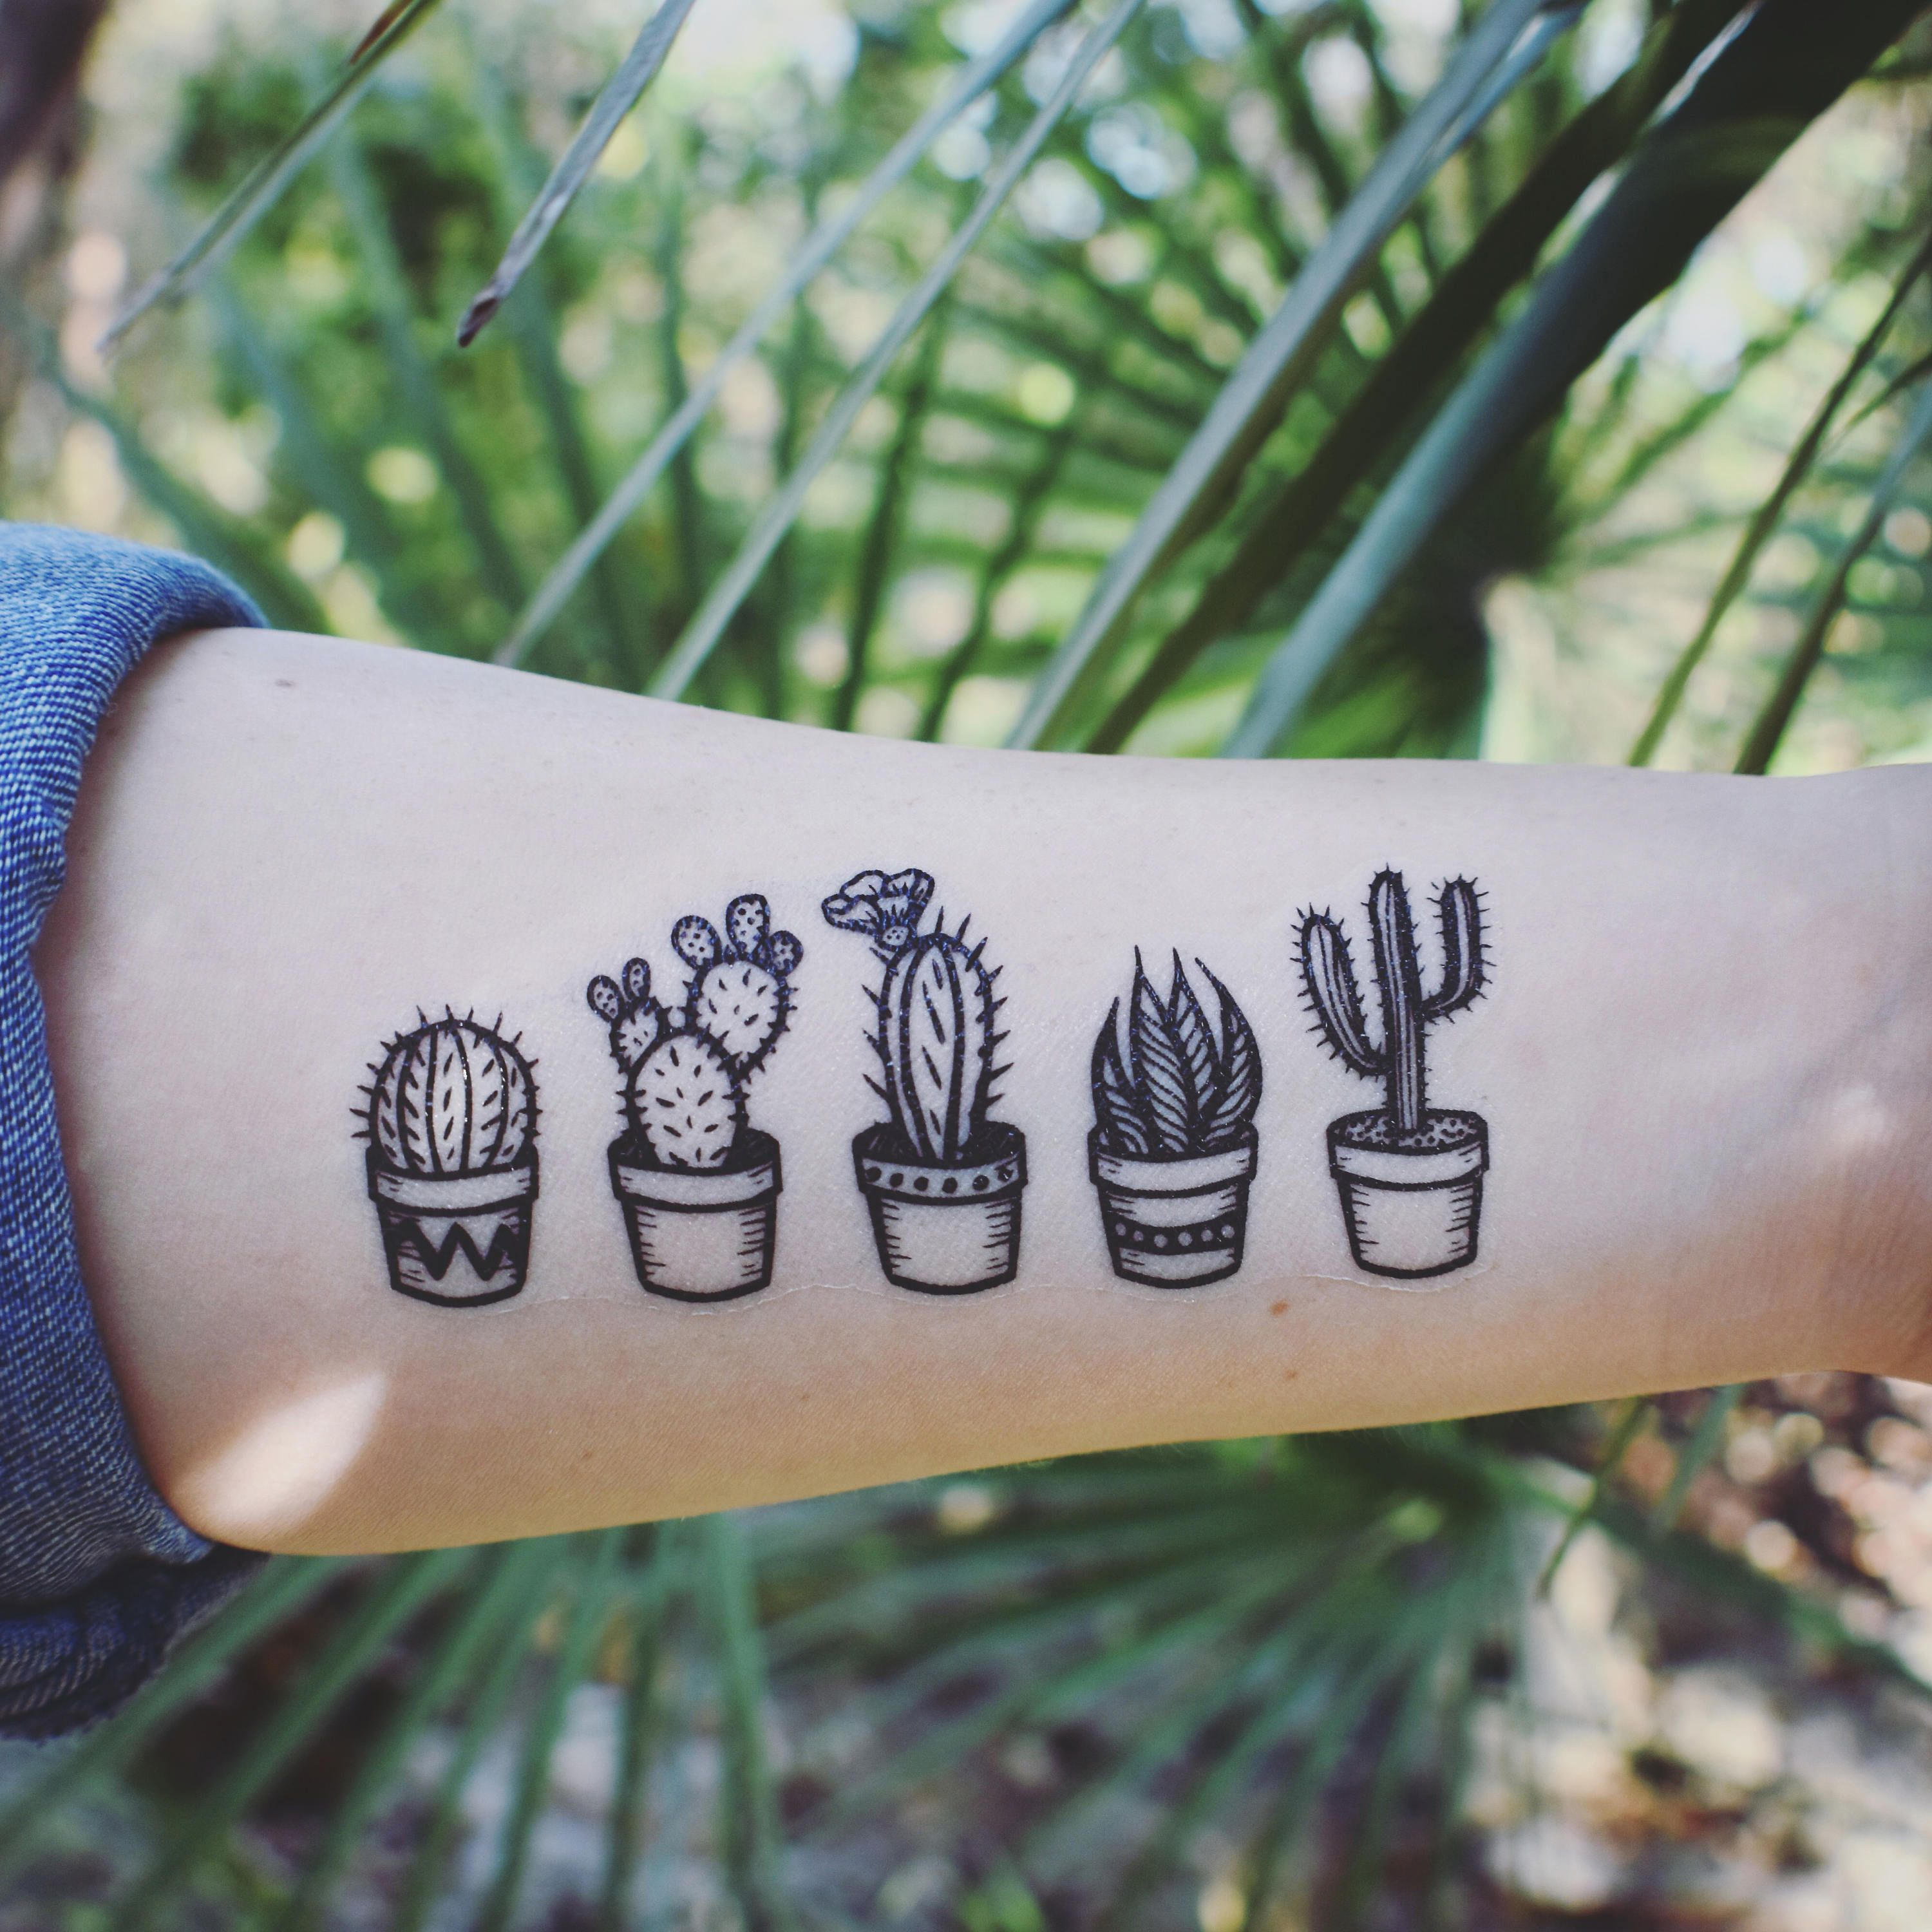 Tattoo Quotes About Nature: Potted Cactus Temporary Tattoos, Succulent House Plants